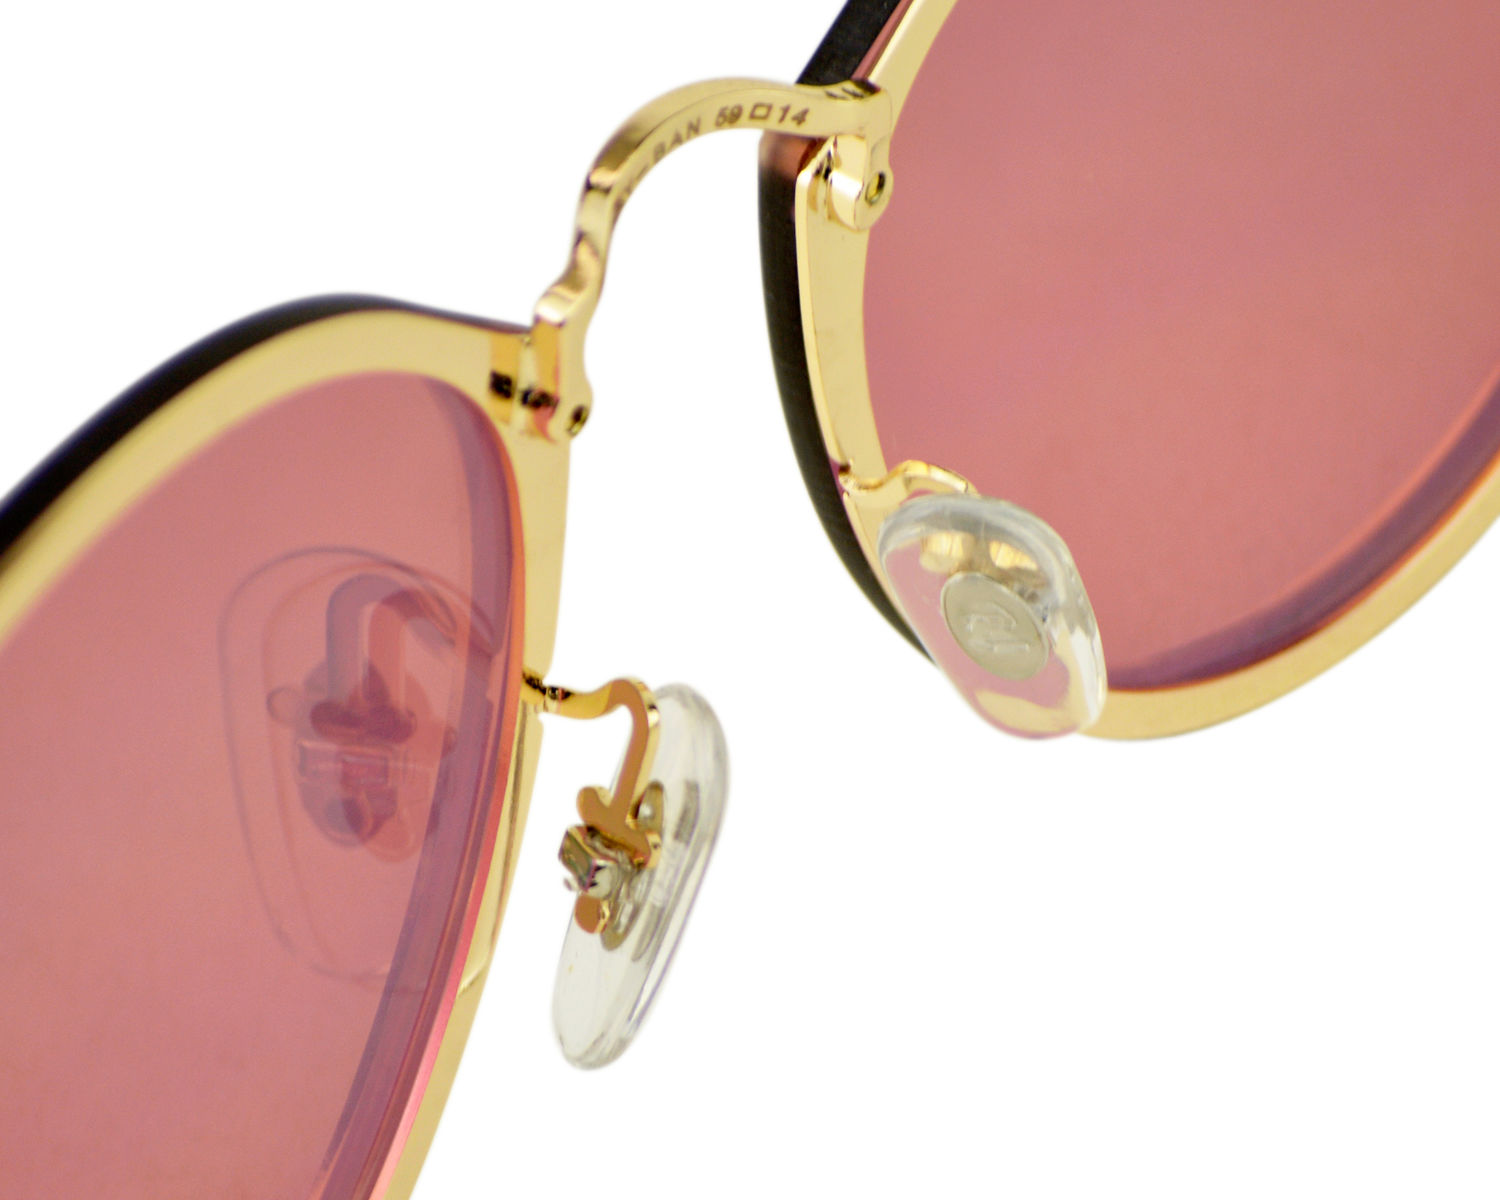 71b2fd68fd0 Ray-Ban RB3574N Blaze Round 001 E4 Gold Frame Pink Mirror Lenses Unisex  Sunglasses 59mm